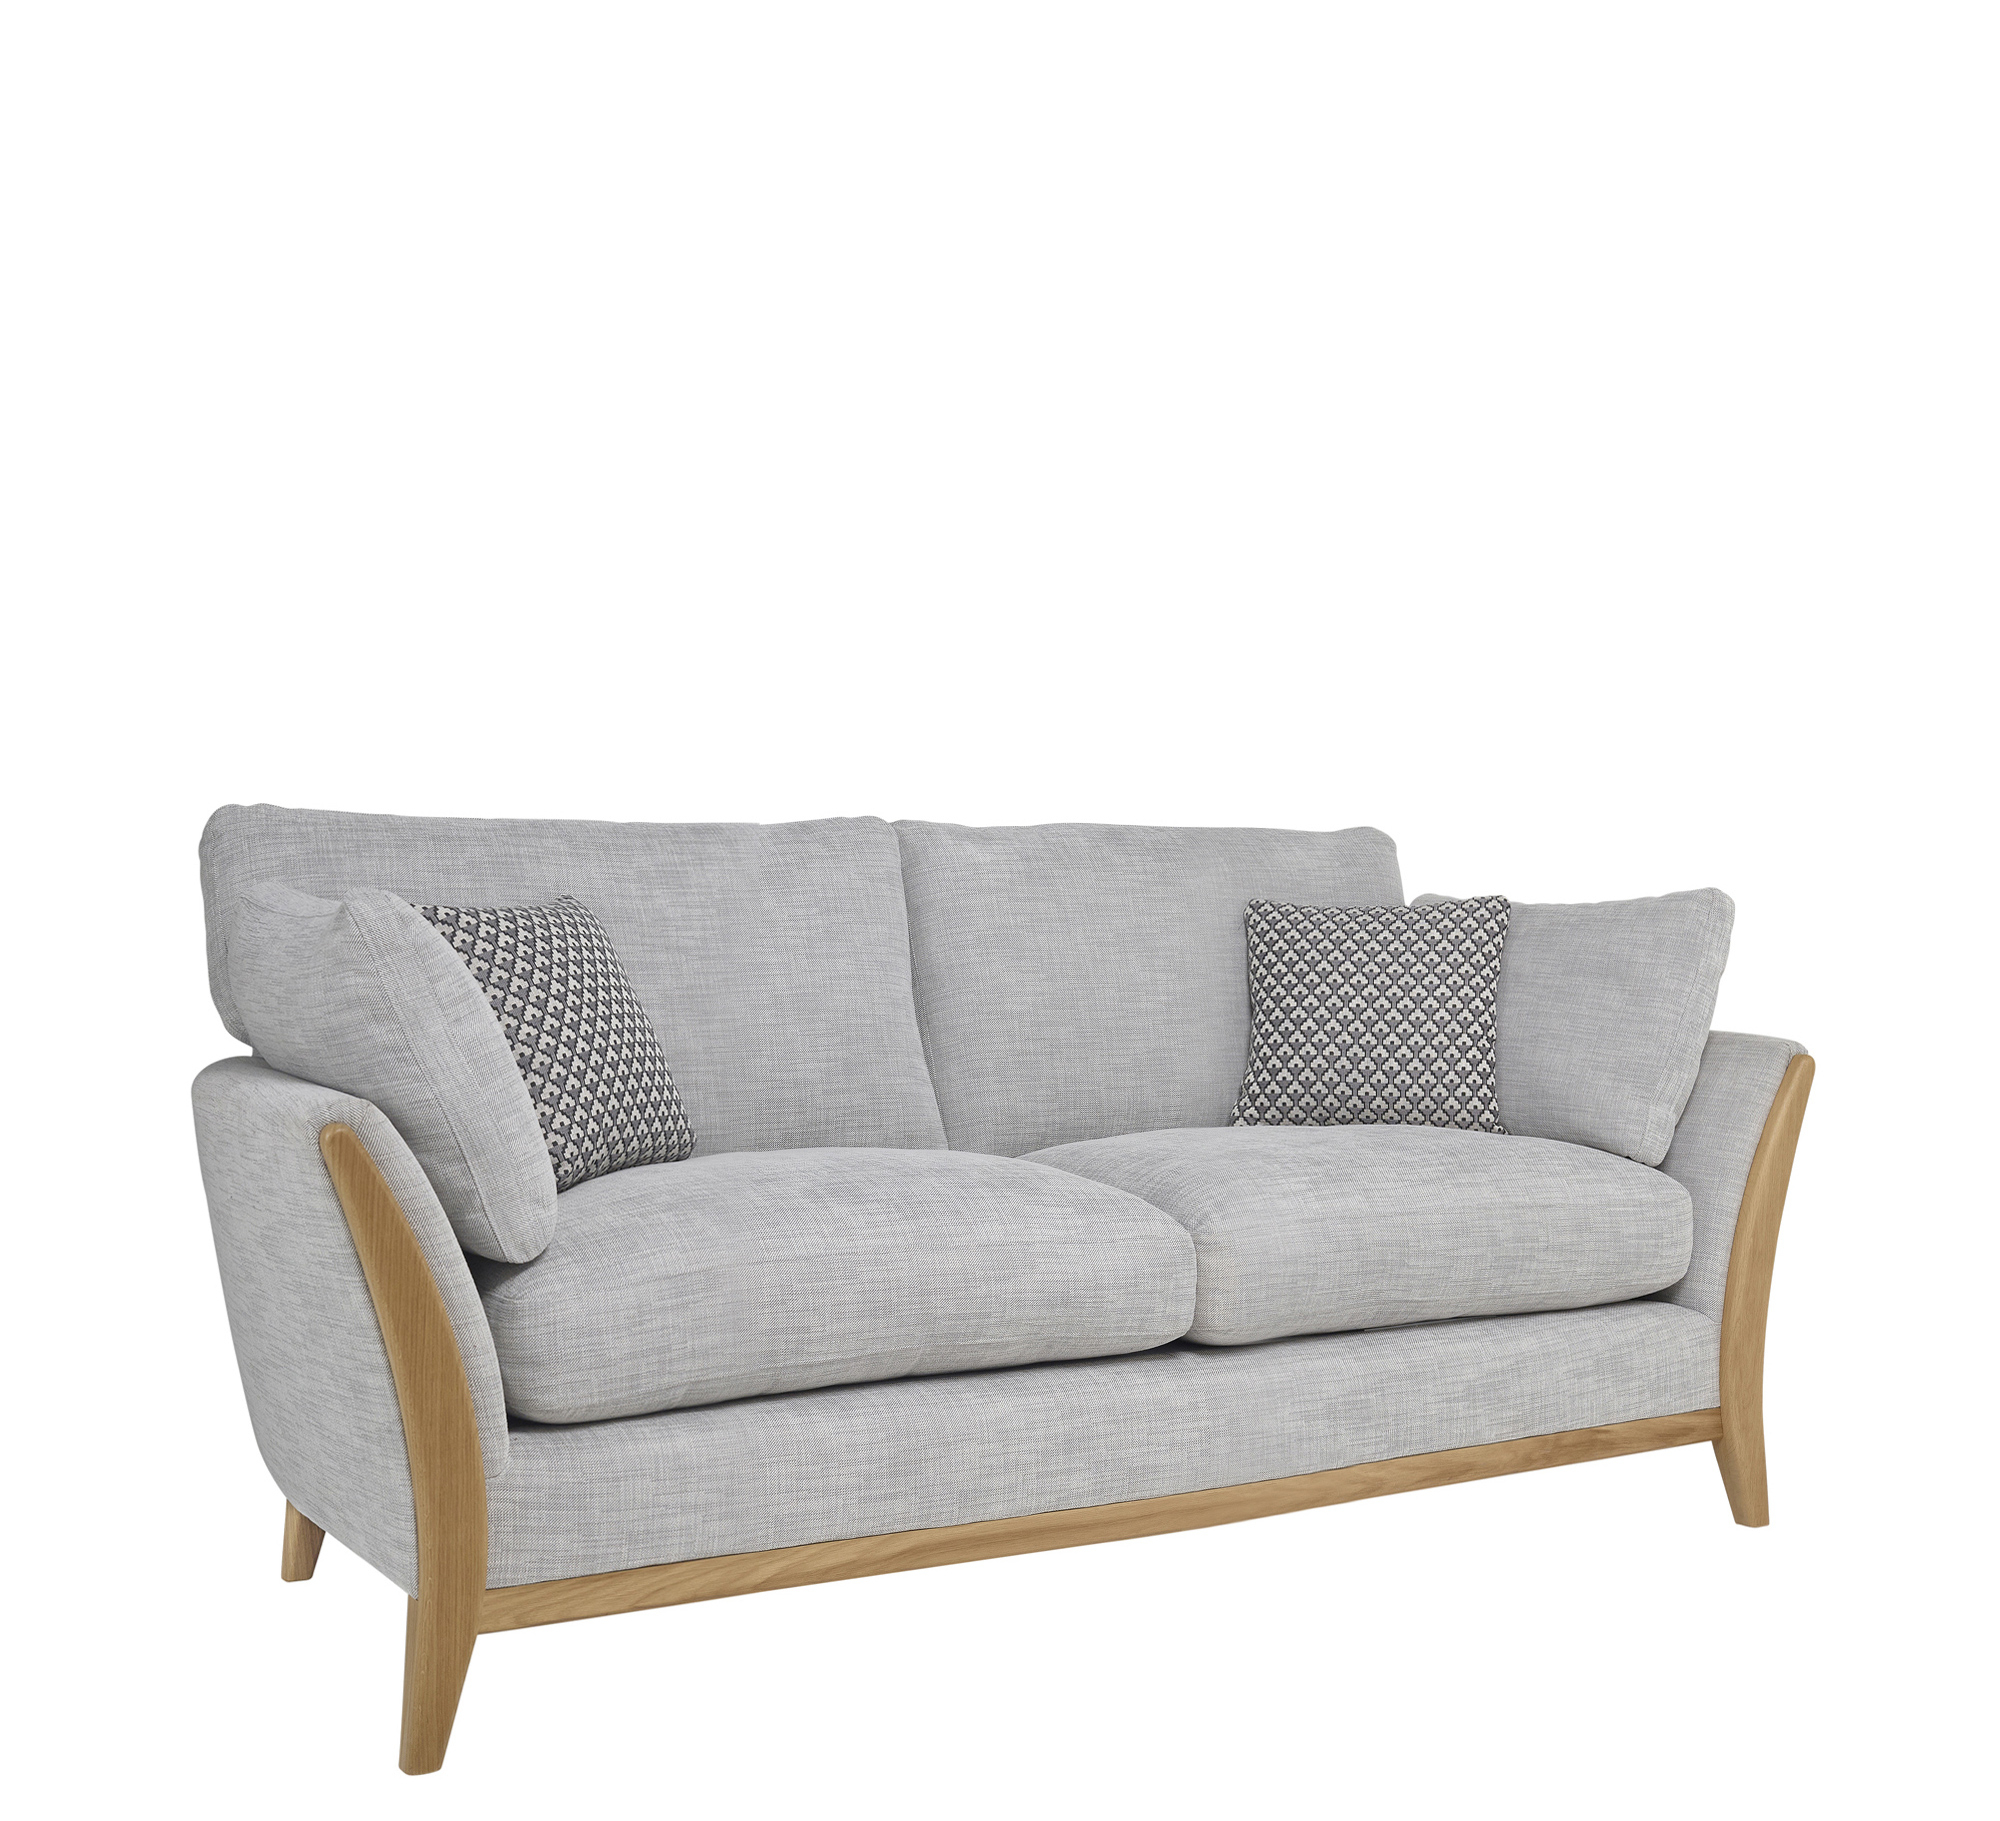 Serroni Large Sofa – Large Sofas – Ercol Furniture In Wide Sofa Chairs (View 11 of 15)